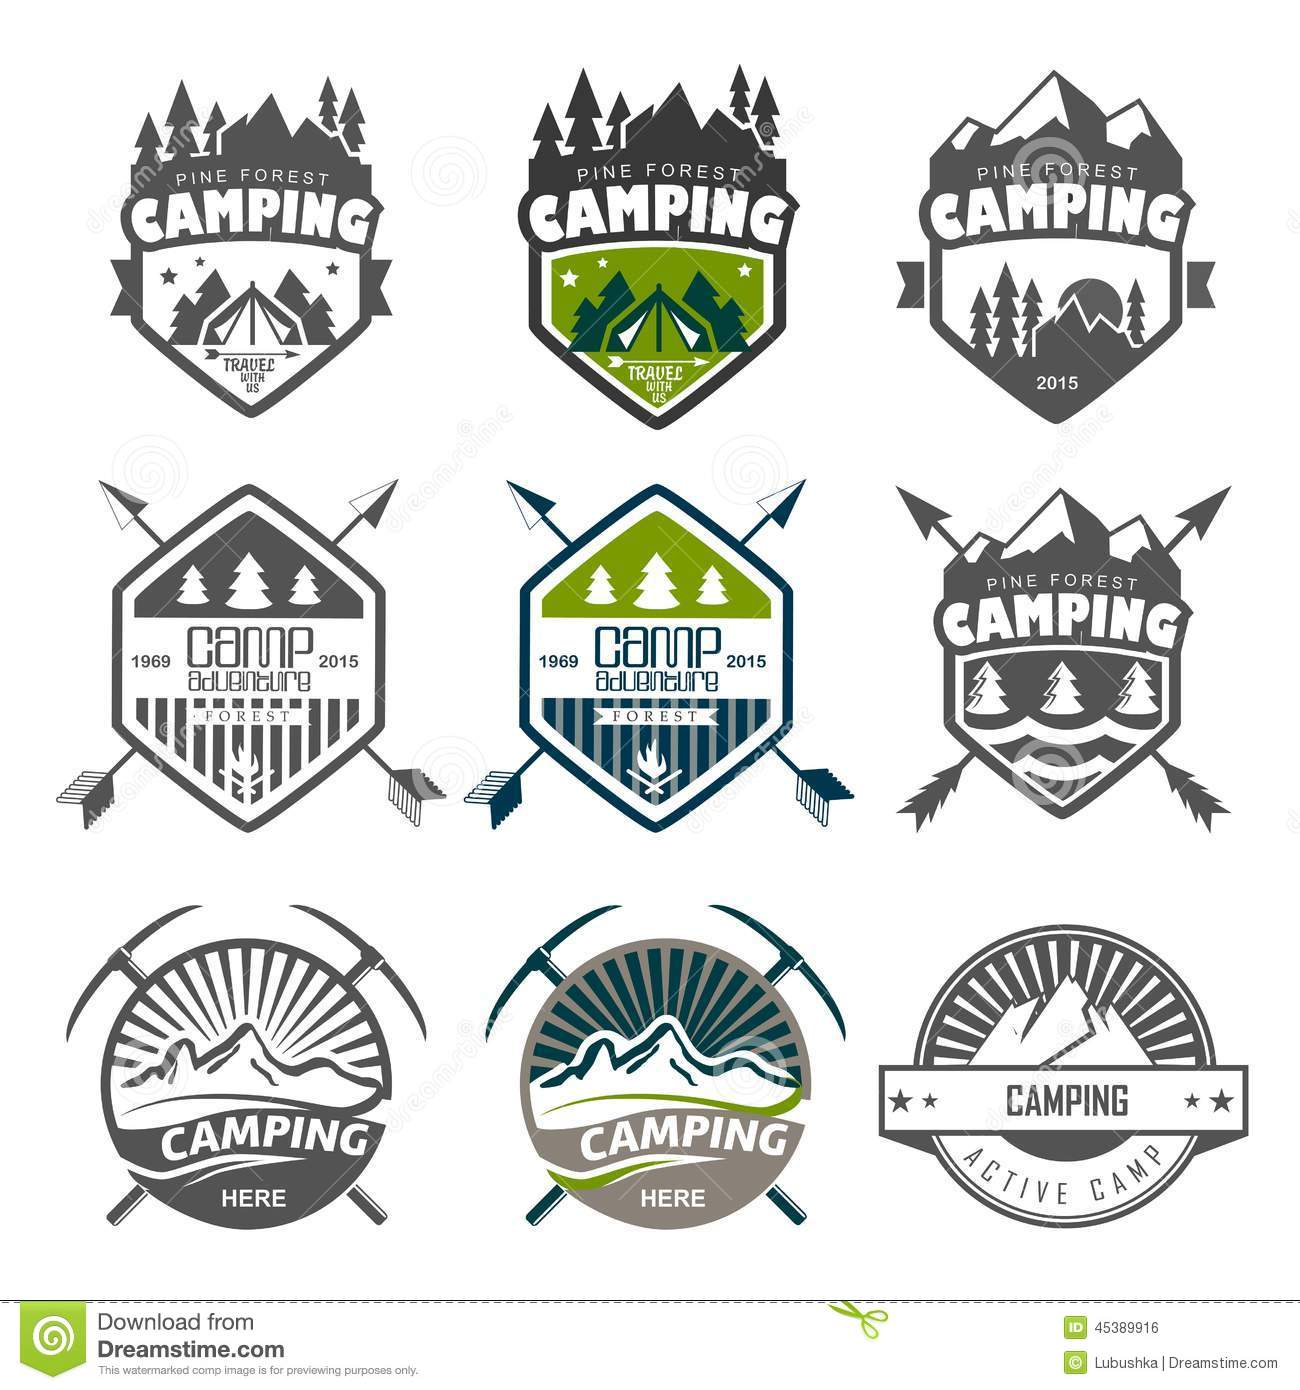 Camping logo, labels and badges. Travel emblems.